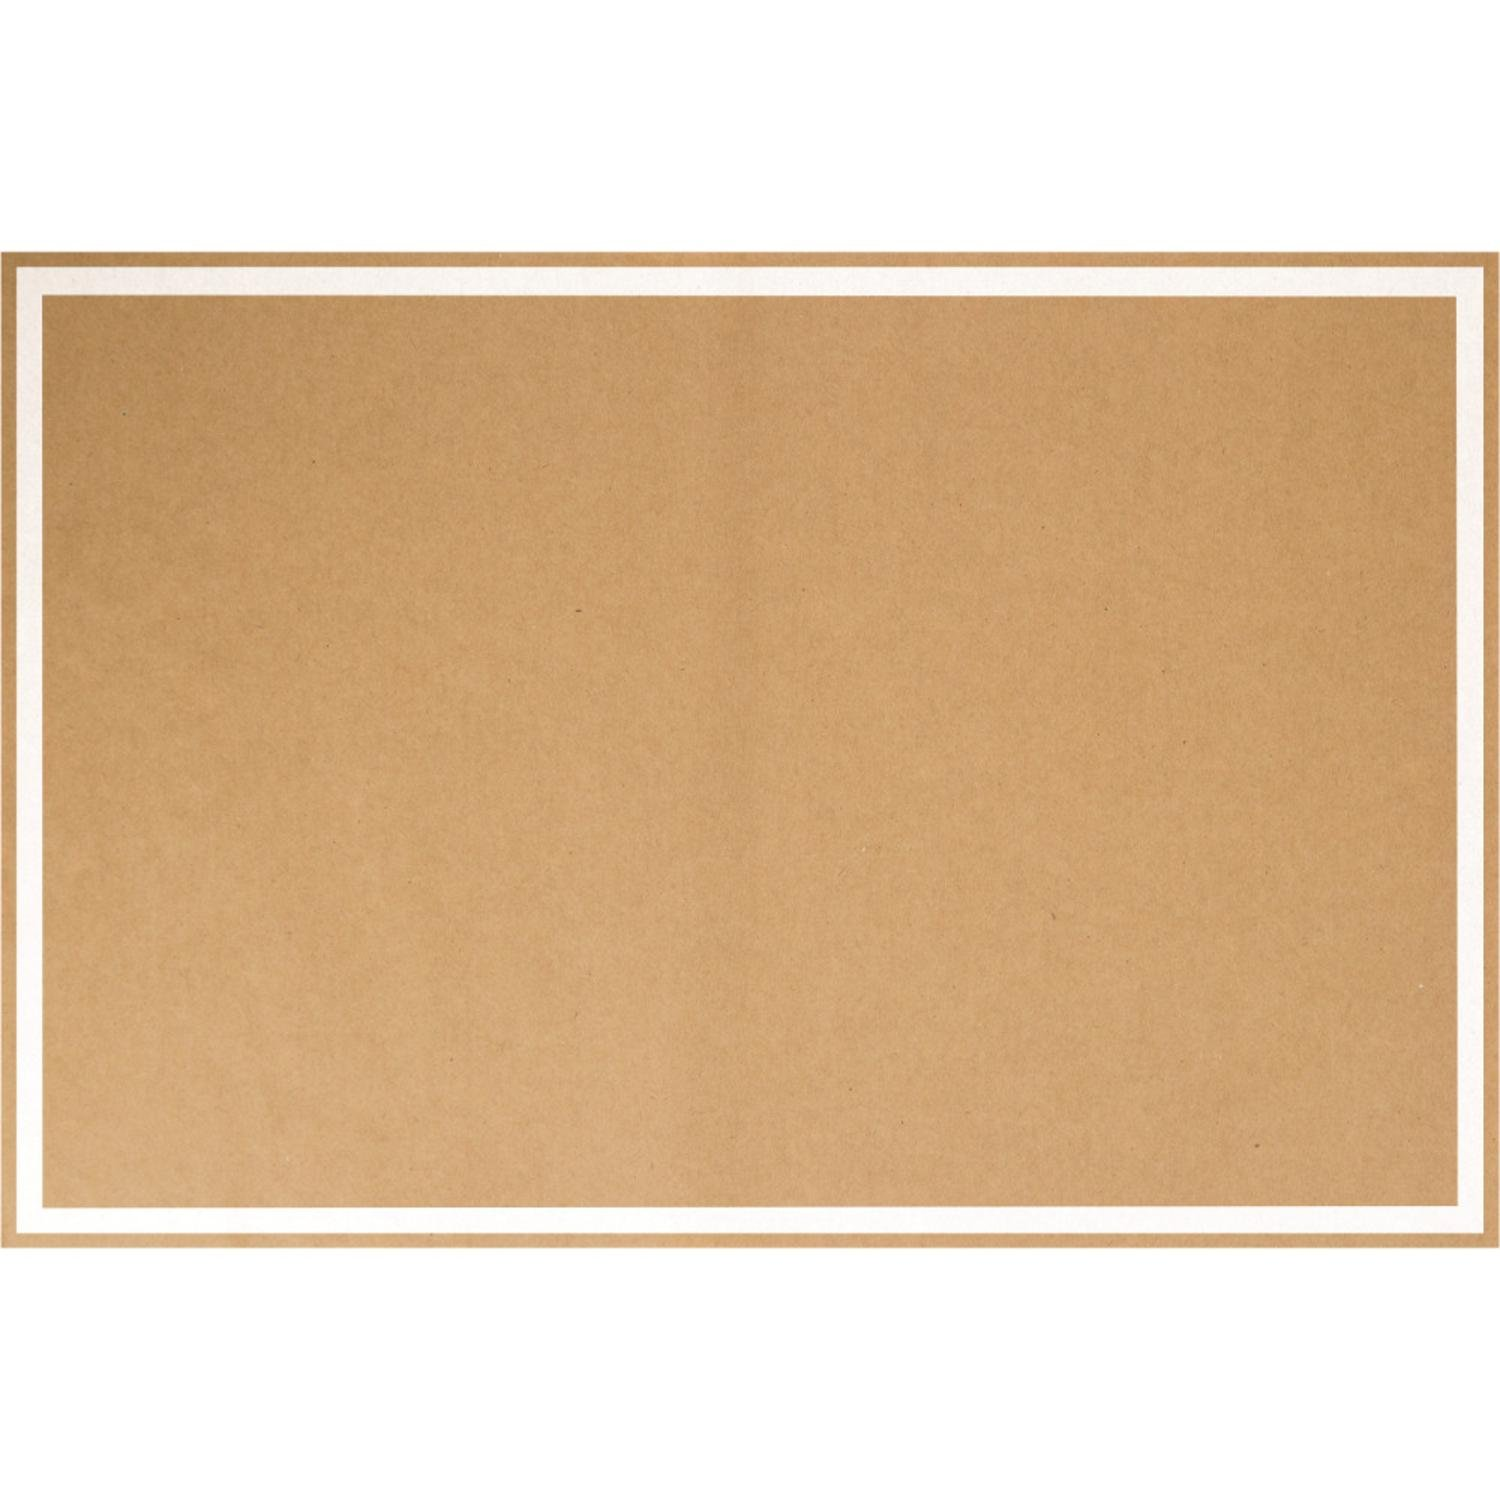 Party Central Club Pack of 144 Brown Kraft Paper Premium Disposable Placemats 19''